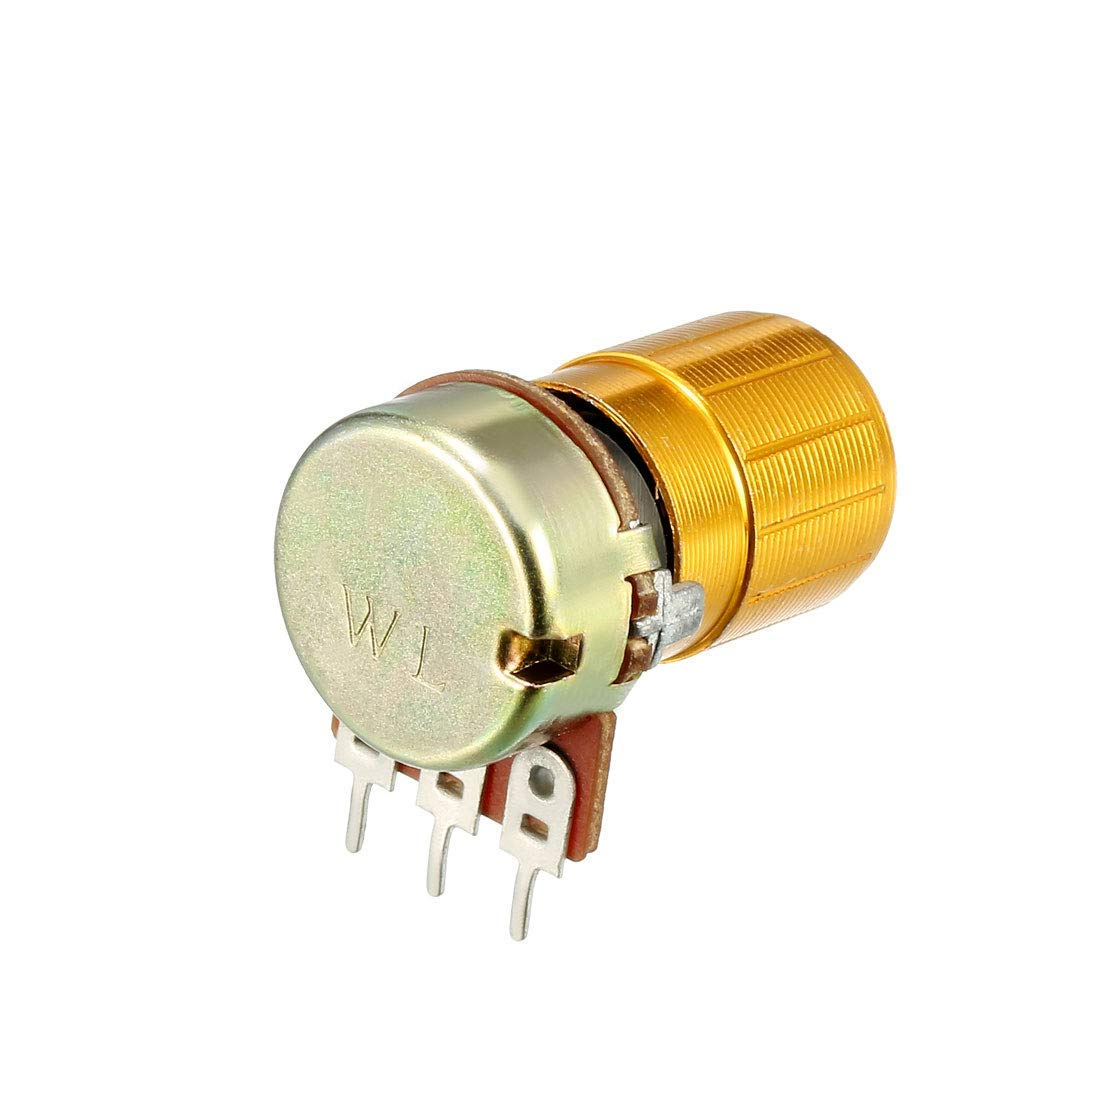 WH148 Variable resistors of 1 K ohms Conical Single-Turn Rotary Film Potentiometer Potentiometer W Knobs 10 Pieces